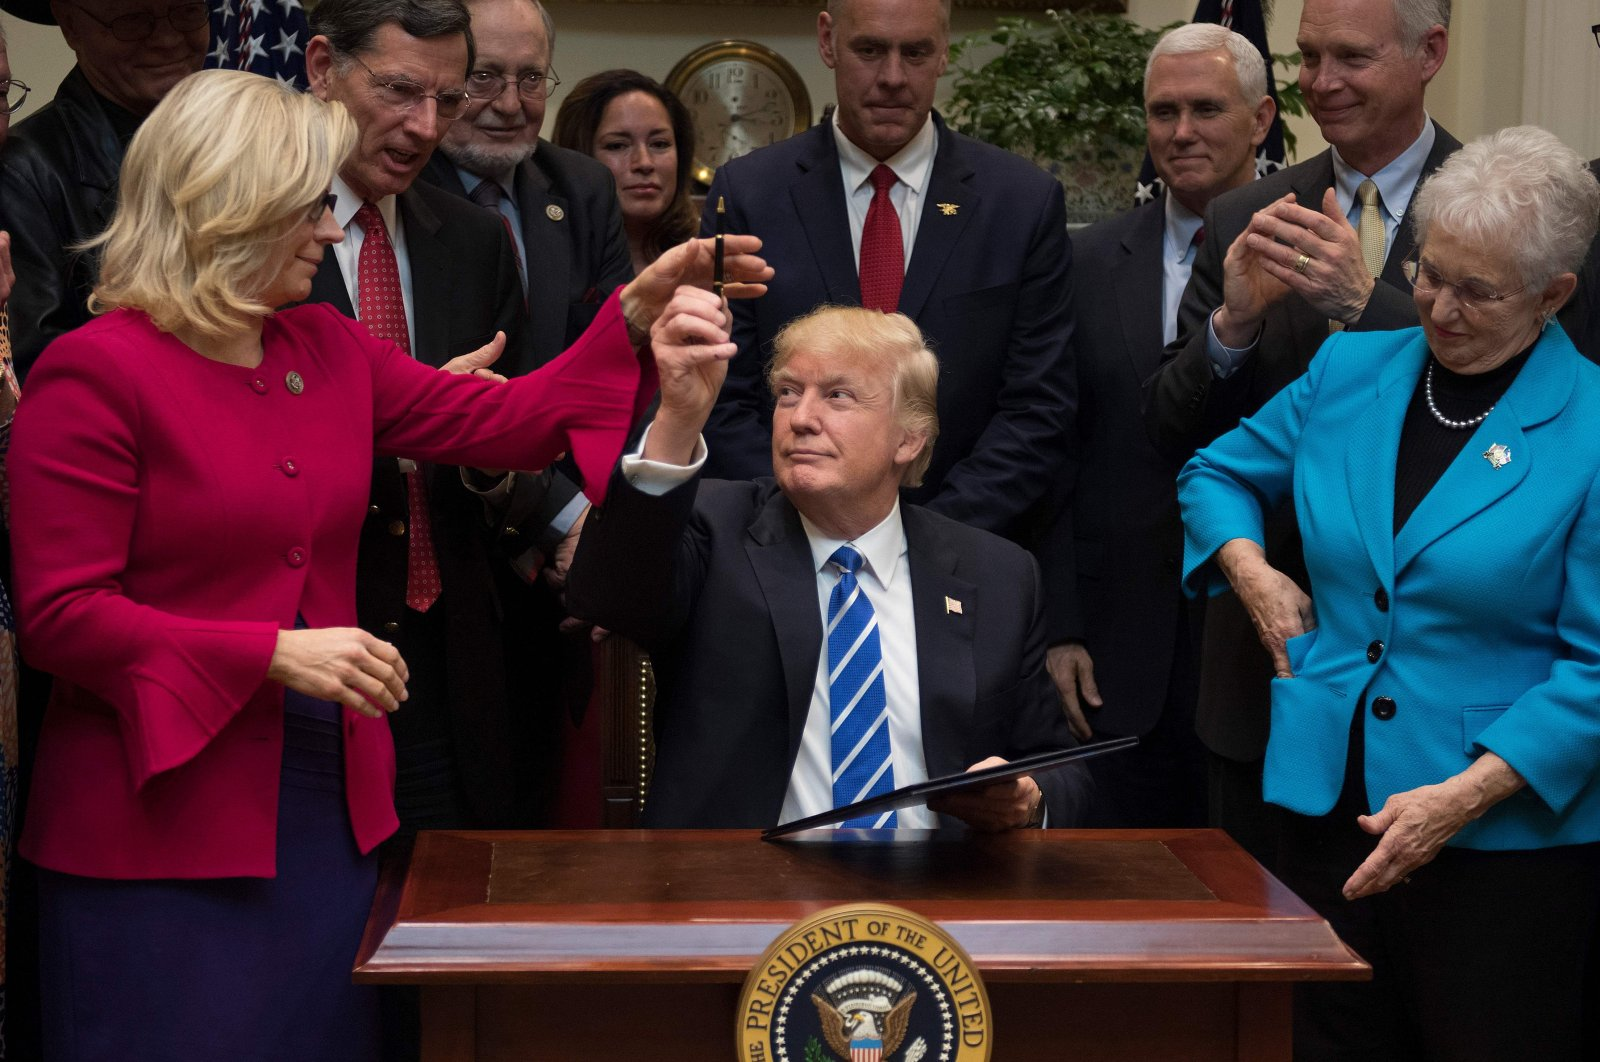 U.S. President Donald Trump gives a pen to U.S. Congressperson Liz Cheney (L), R-Wyoming, after signing H.J. Resolution 37, 44, 57 and 58 at the White House in Washington, DC., U.S. March 27, 2017. (AFP Photo)